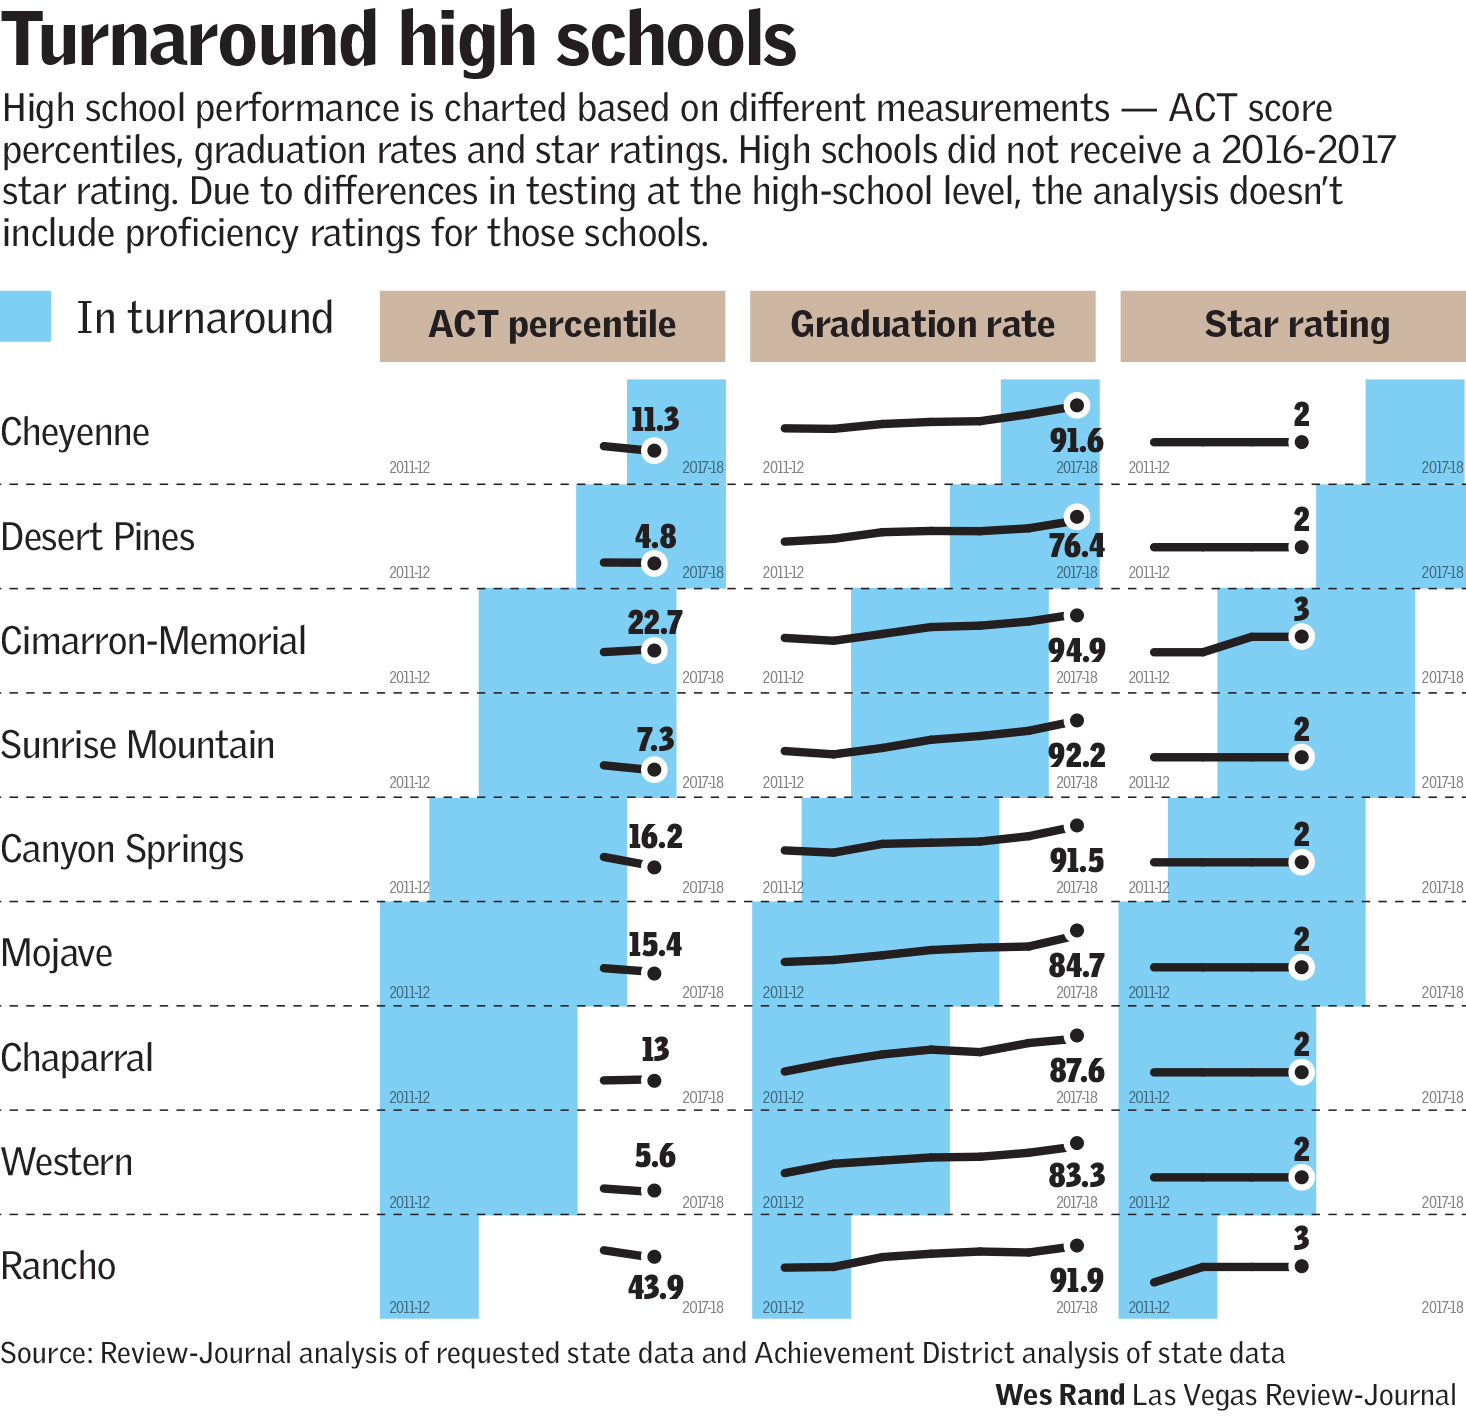 Turnaround high schools